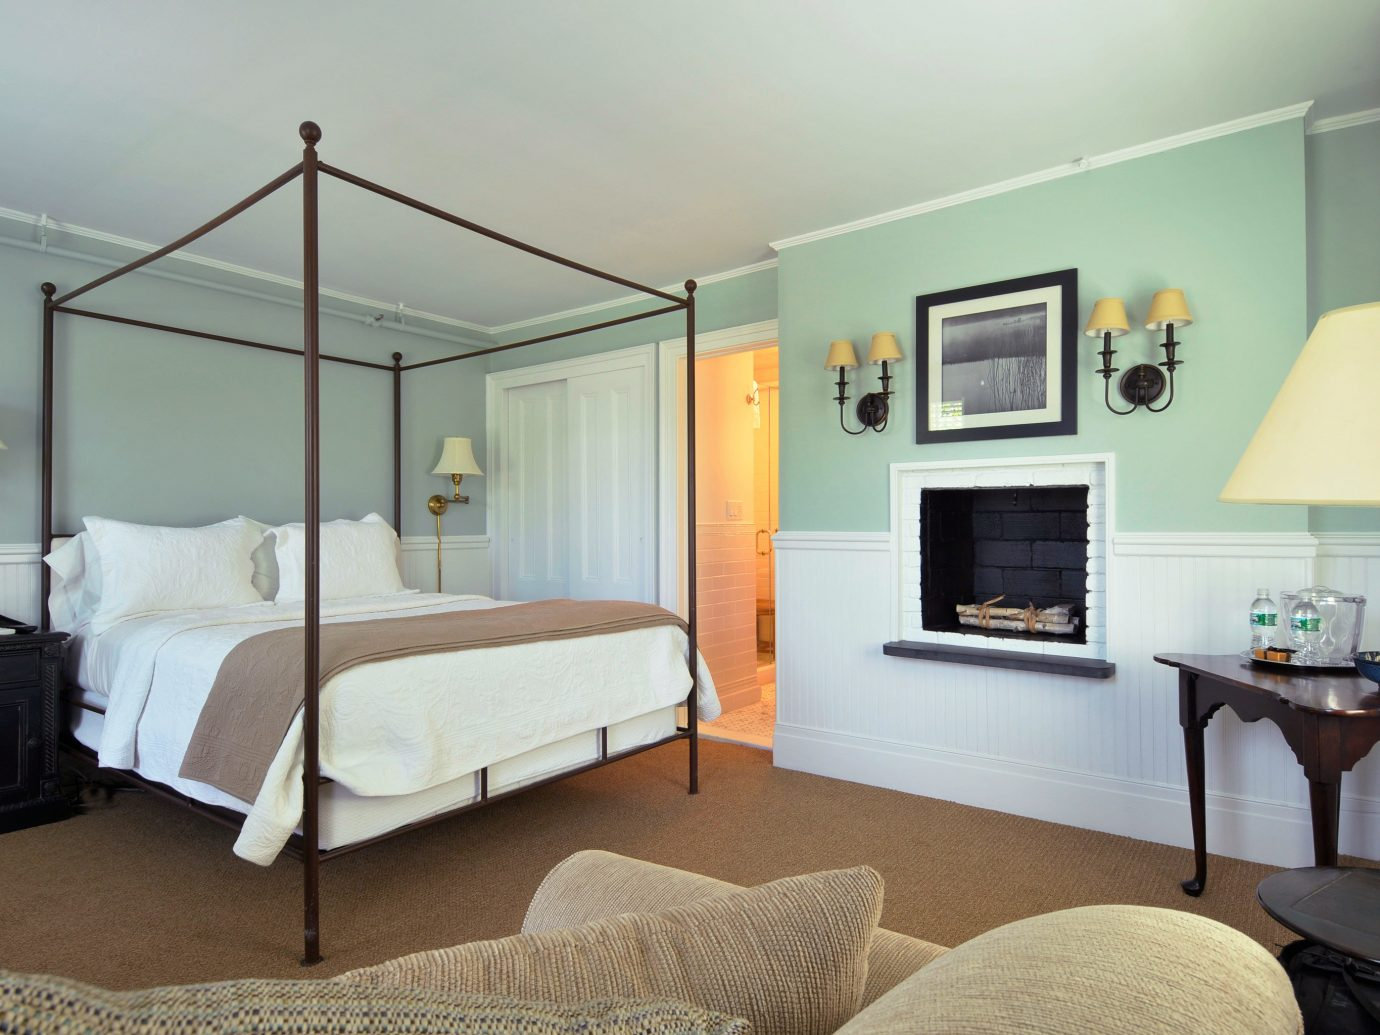 Beach South Fork The Hamptons indoor wall room floor bed property Bedroom ceiling Living Suite real estate estate home furniture hotel cottage interior design living room Villa apartment condominium area decorated lamp